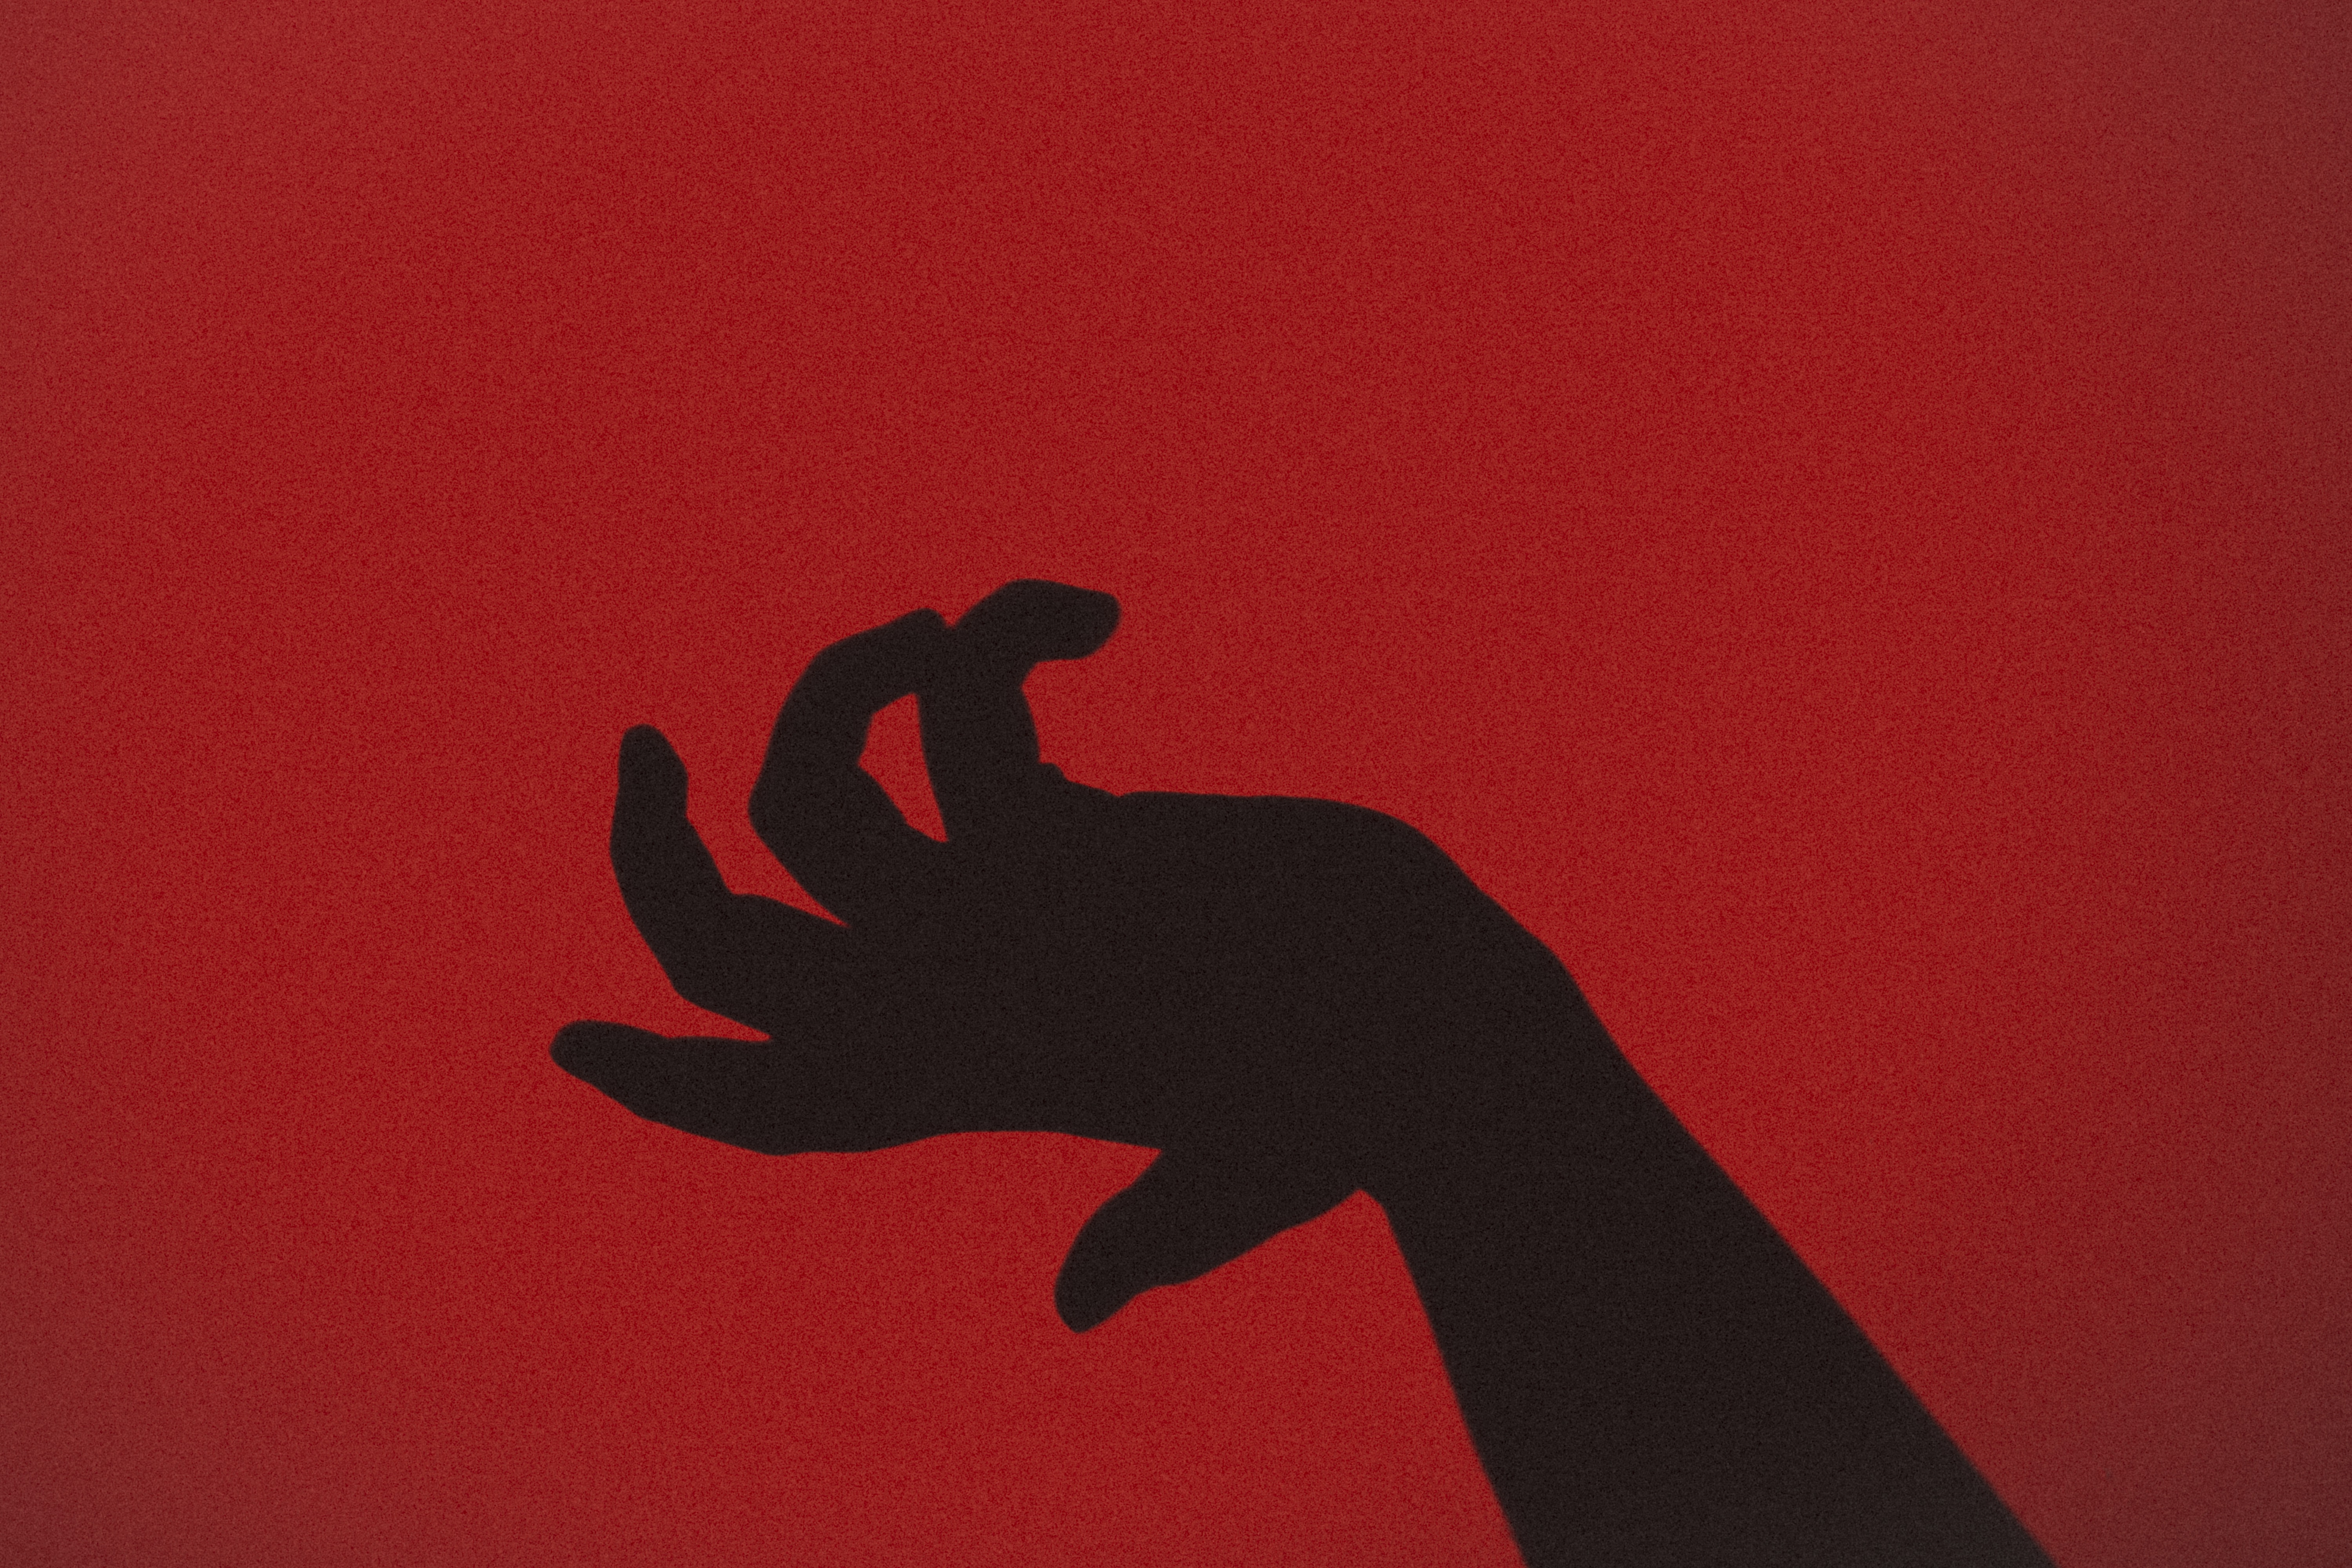 silhouette of hand with red background